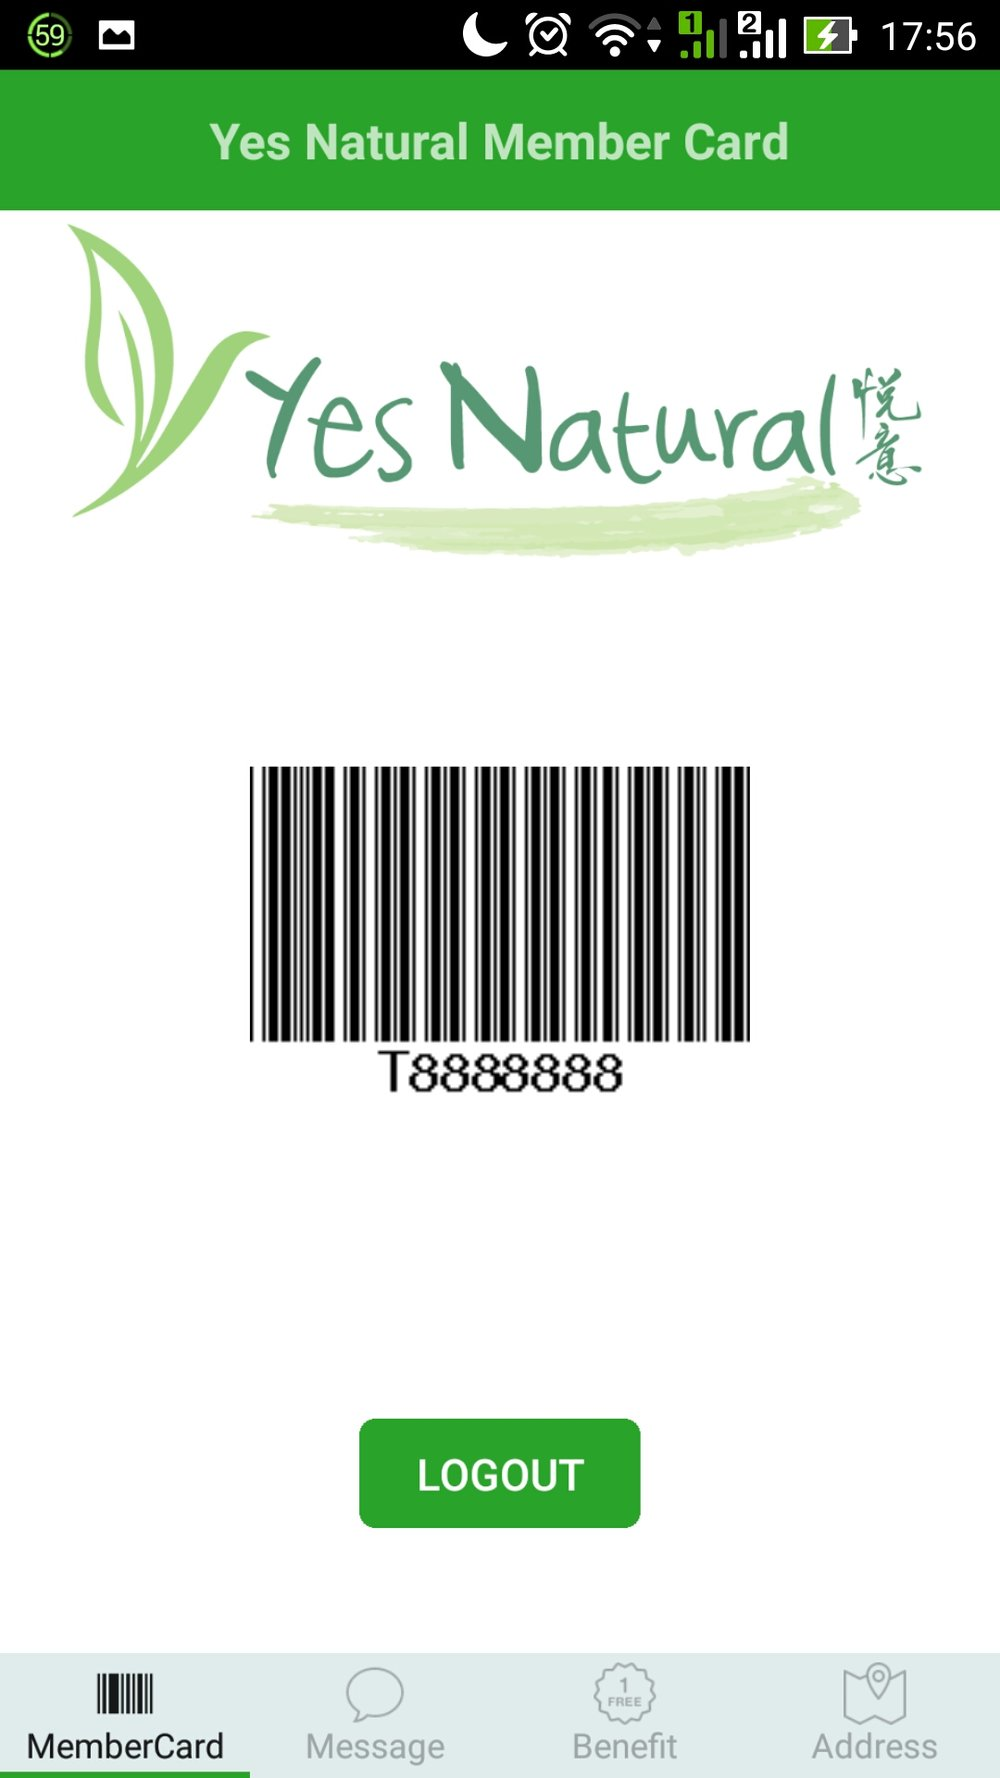 Yes Natural Membership App Login Screen After Login.jpg